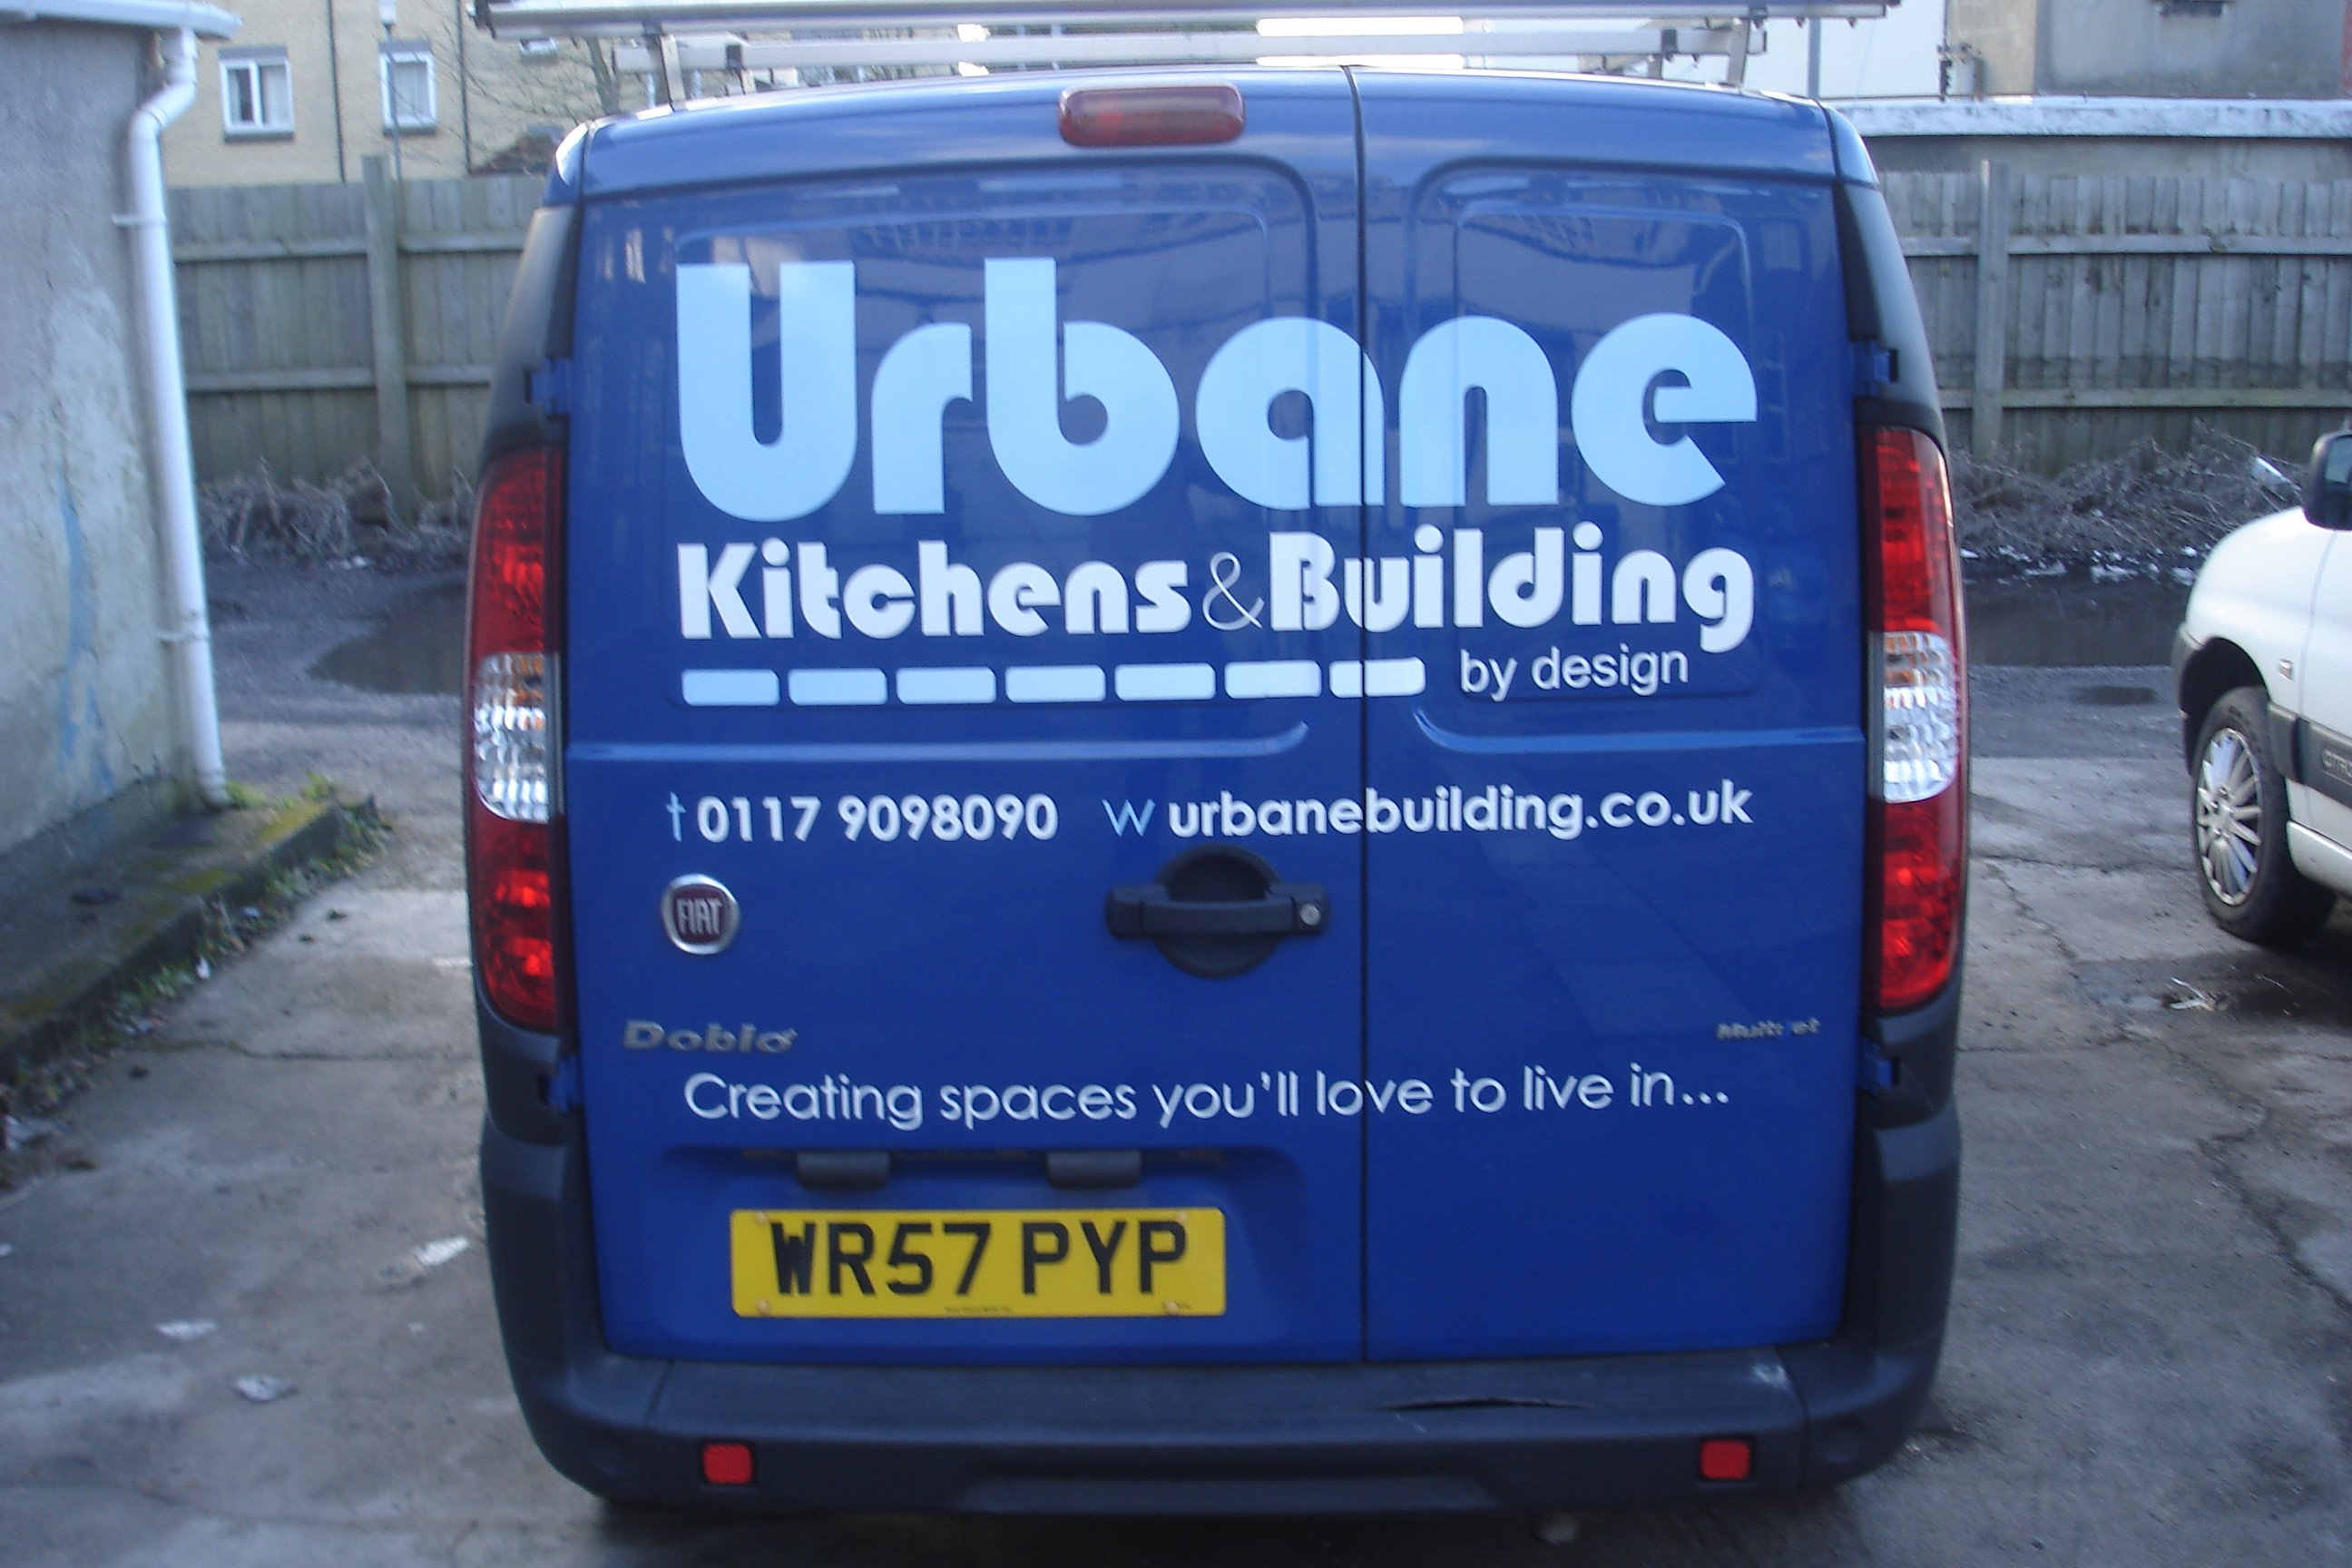 Urbane kitchens & building